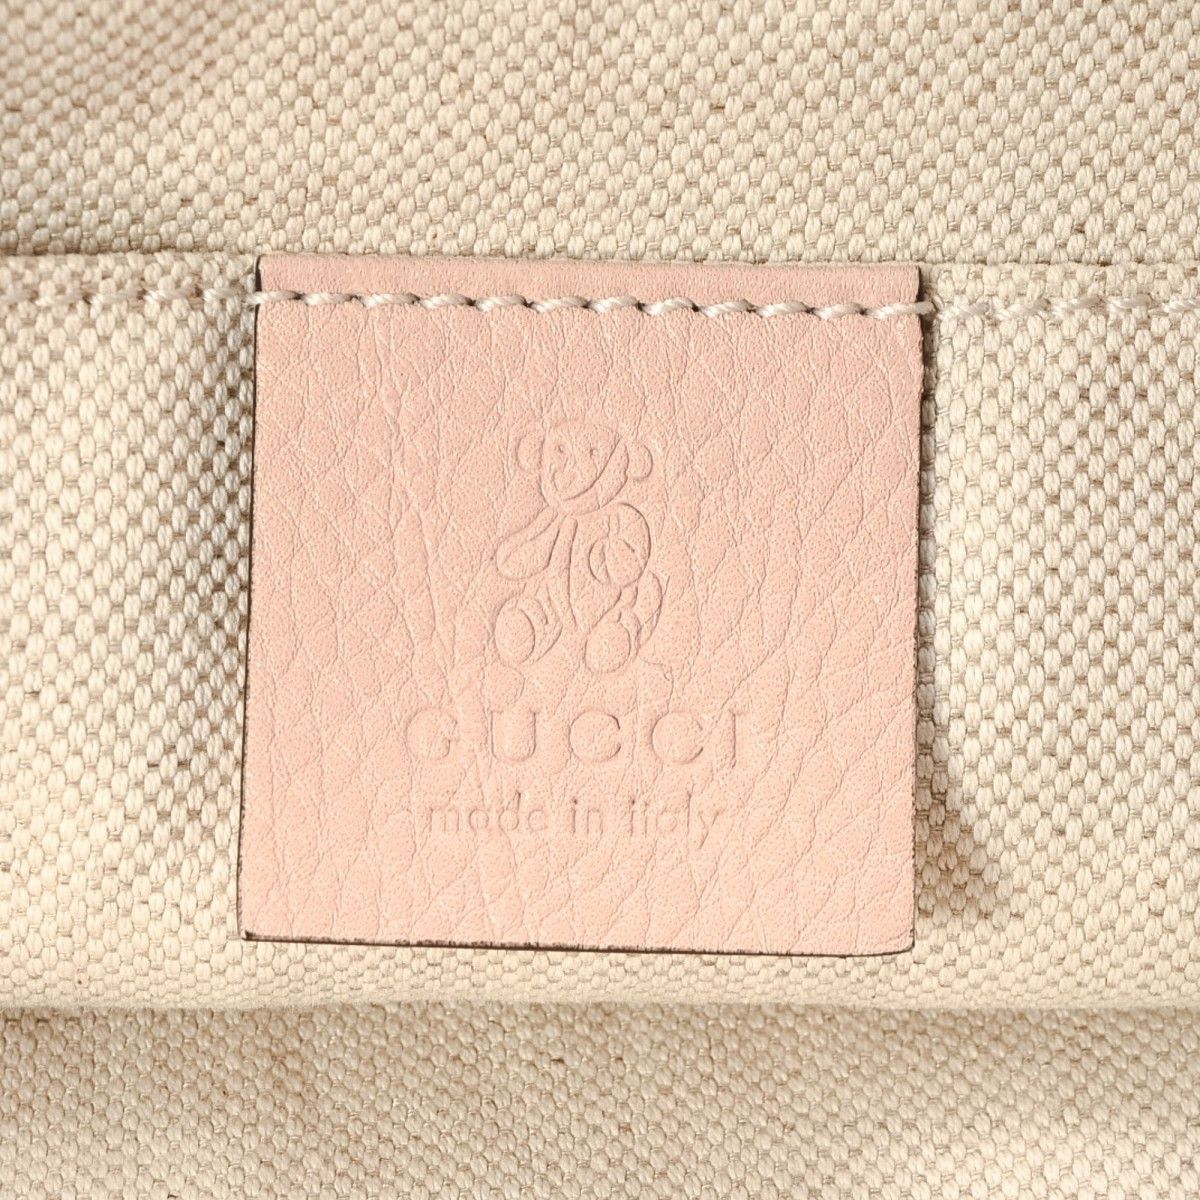 58e939904383 Gucci Kids SOHO Tote. LXRandCo guarantees the authenticity of this vintage  ...